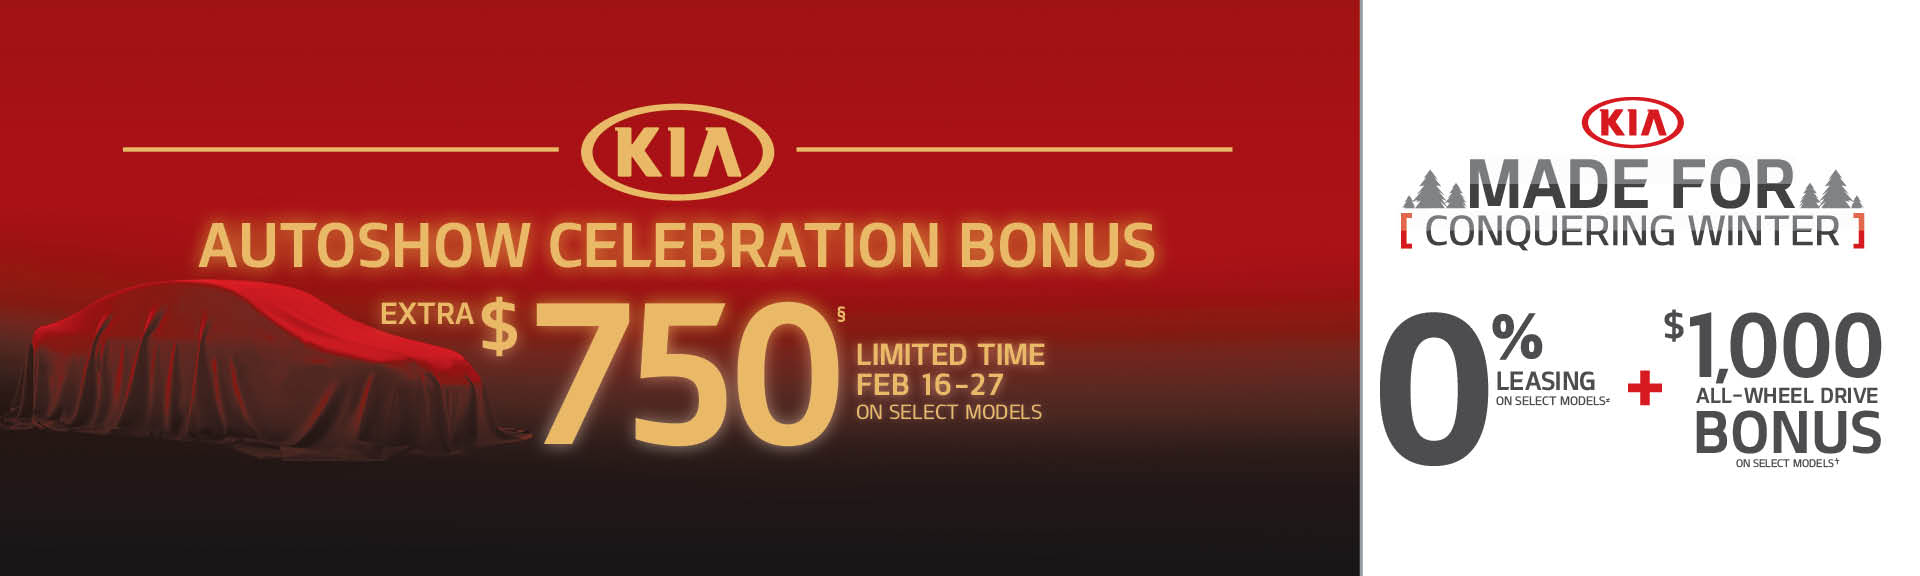 Kia Auto Show Celebration Bonus